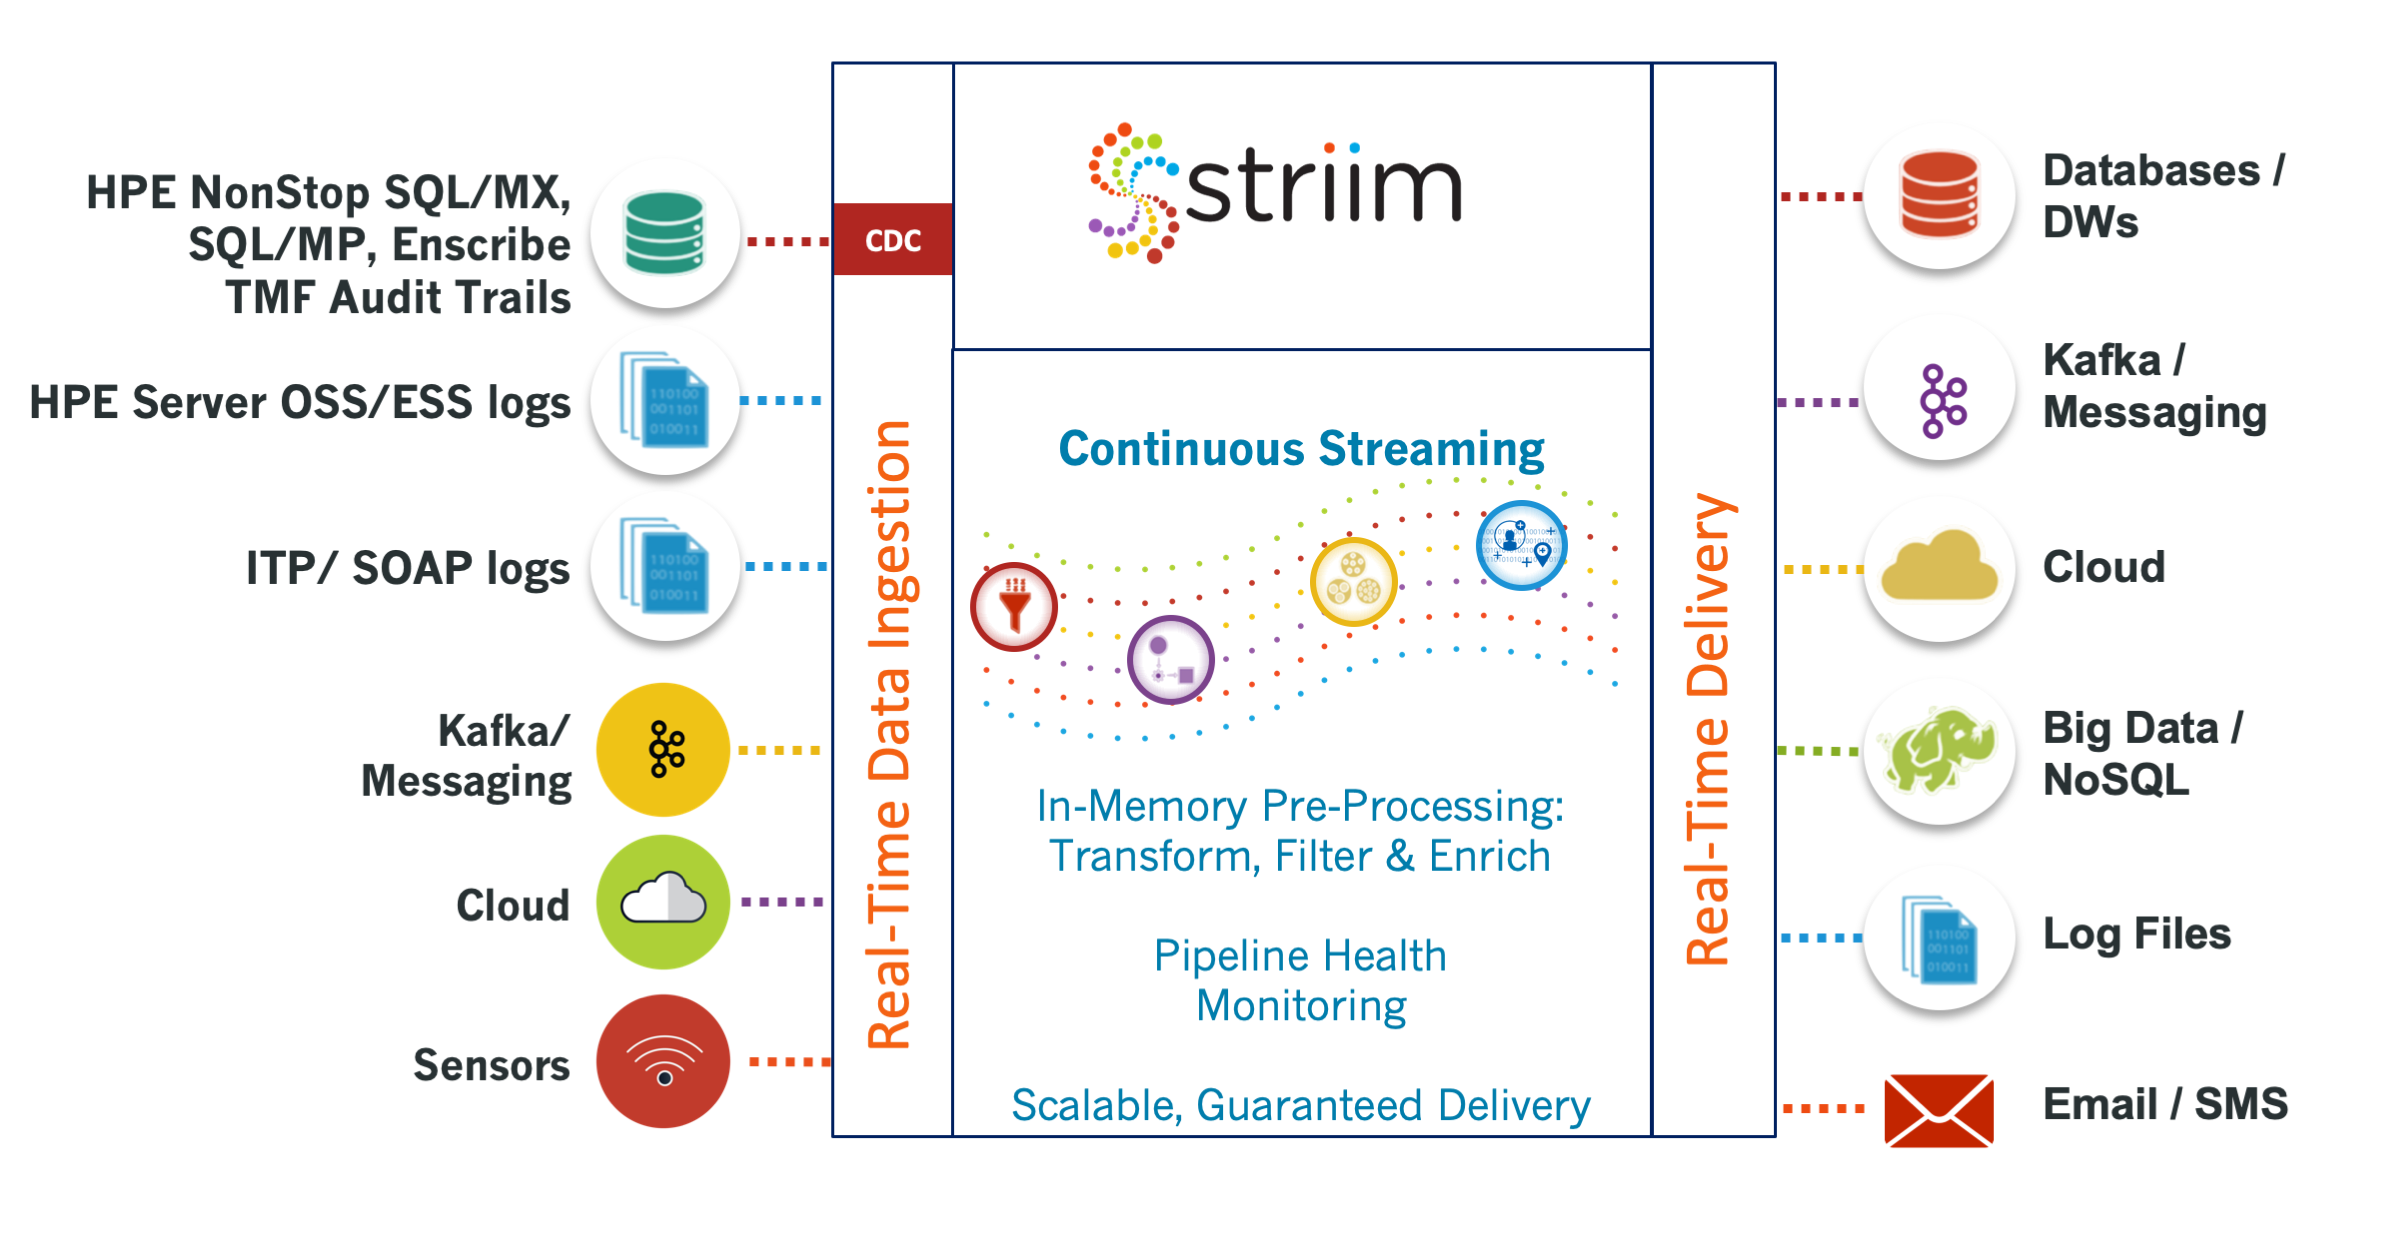 Striim for HPE NonStop